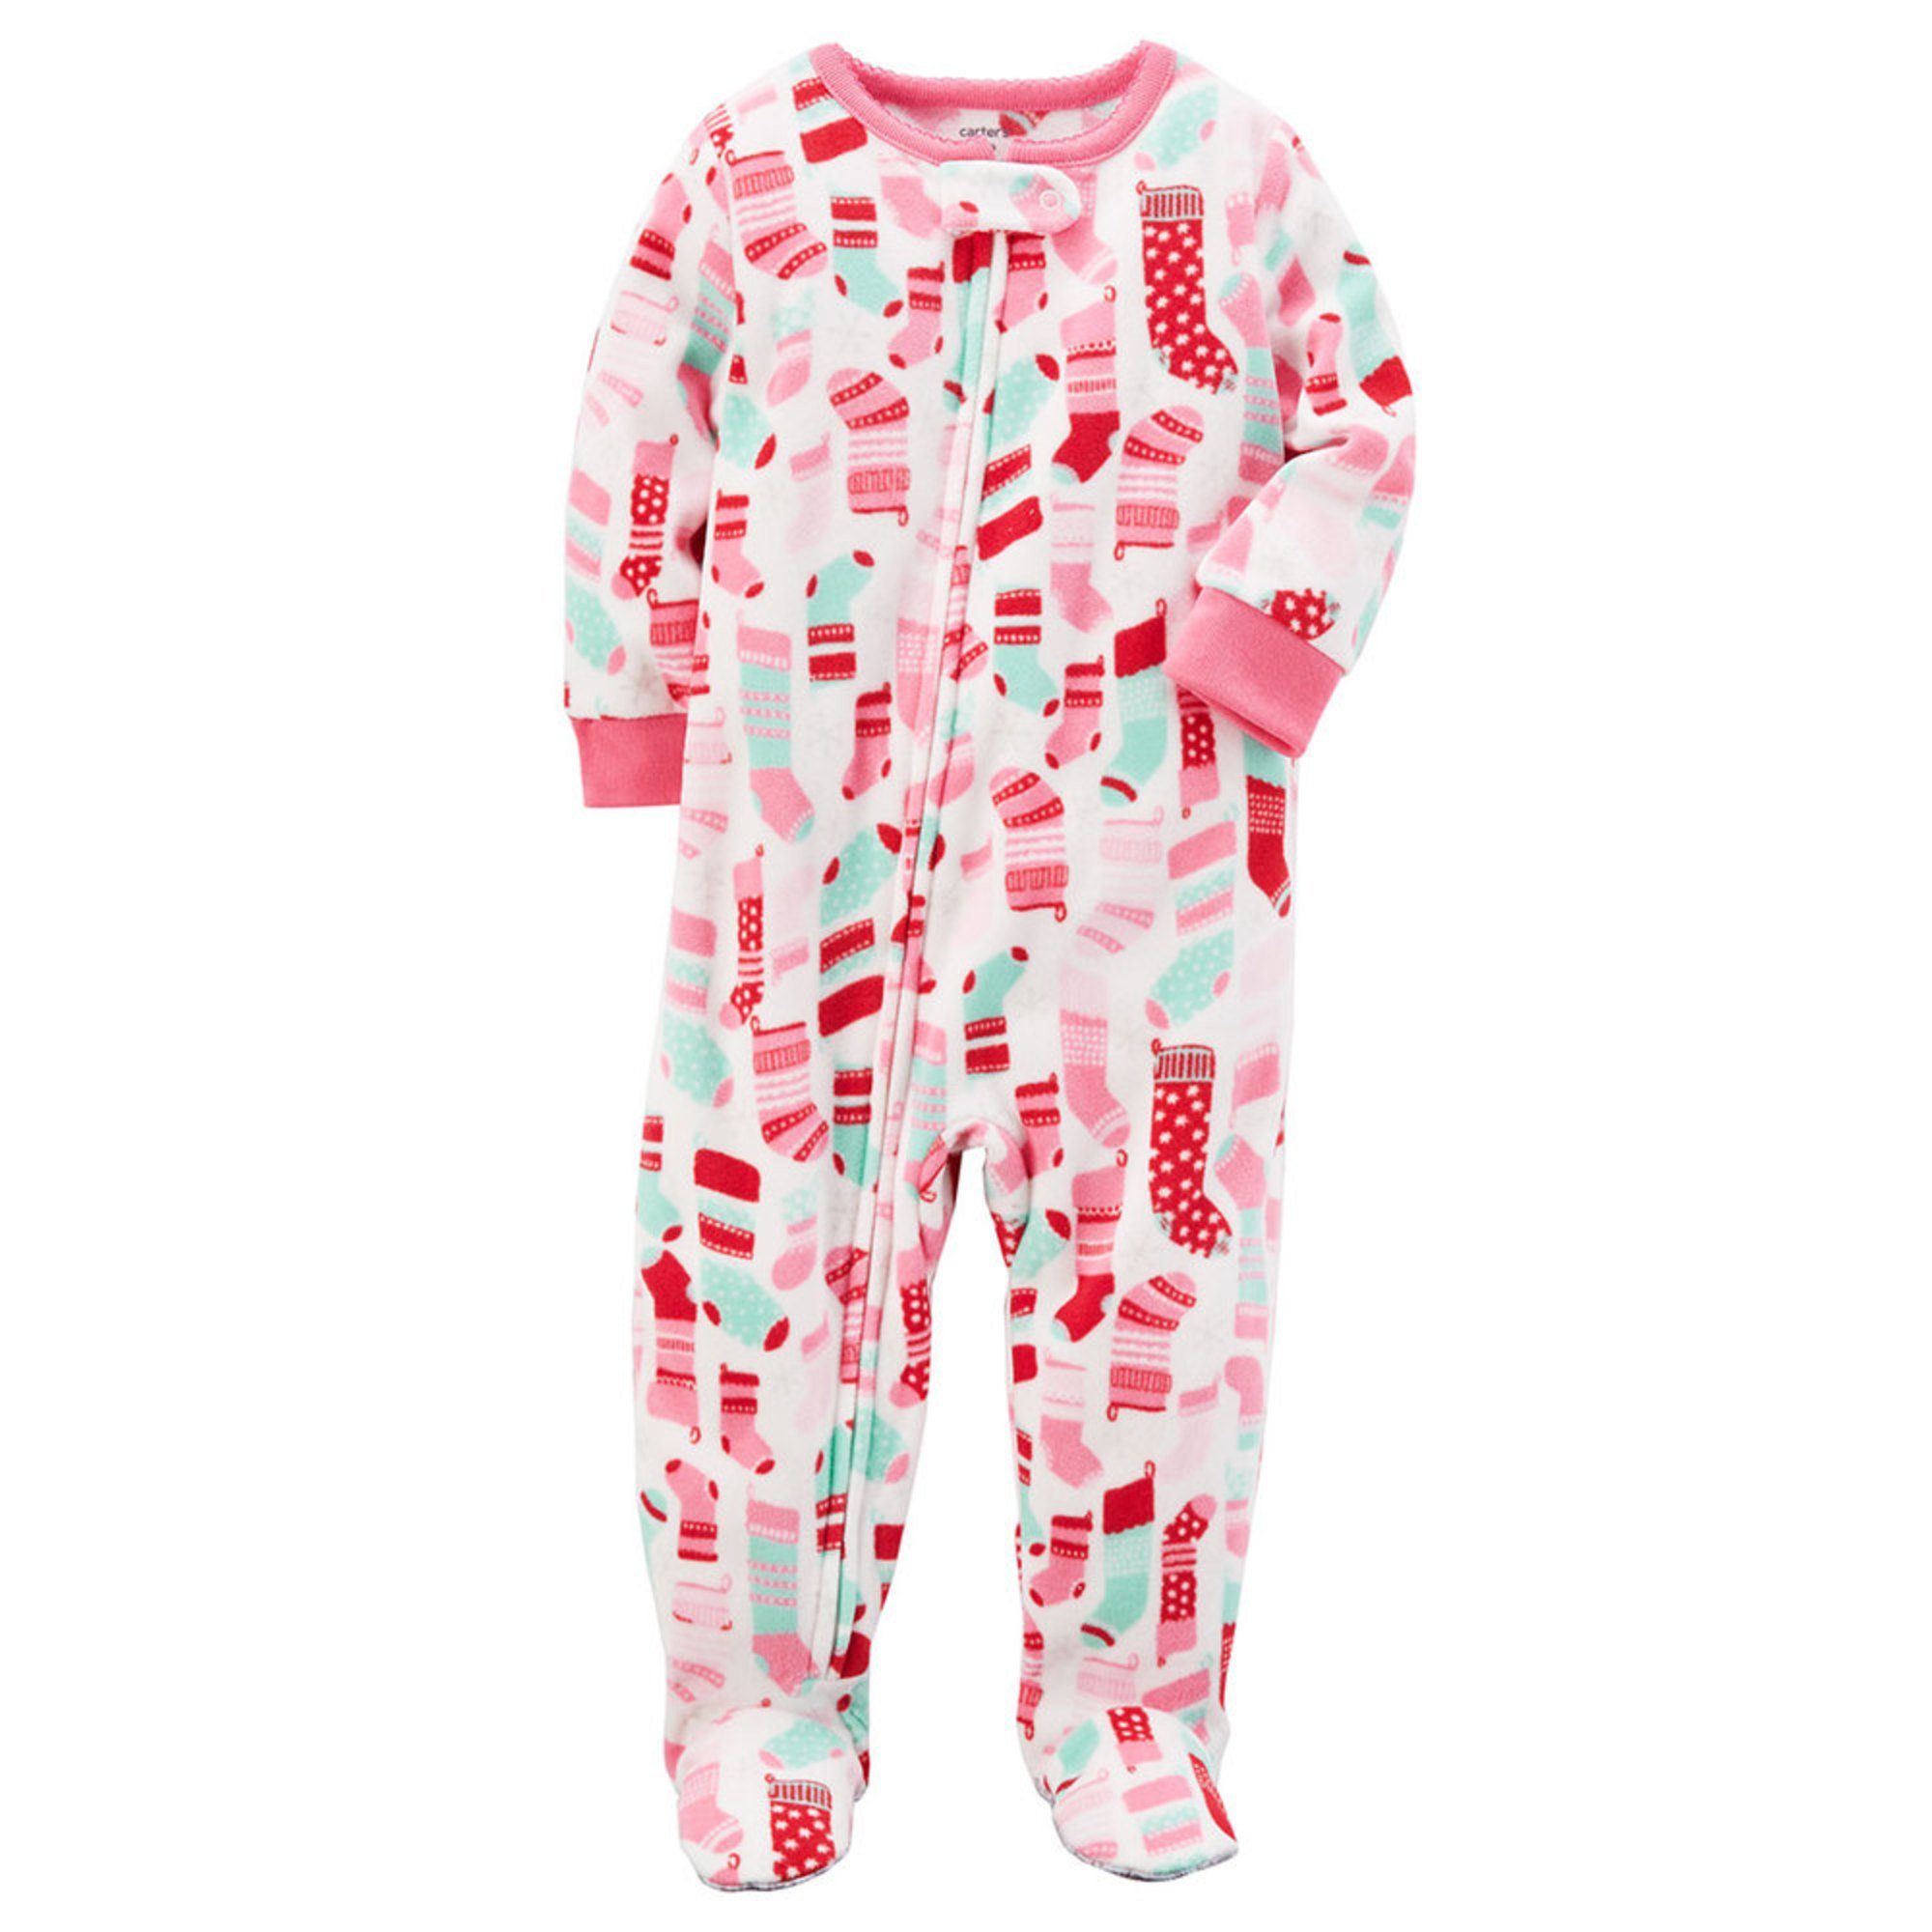 Infant Girls Clearance Sleepwear. Infants grow so fast that they are constantly out growing their clothes and pajamas. It sometimes makes sense to buy last year's style pajamas, new in the package, but at a deep discounted cost.